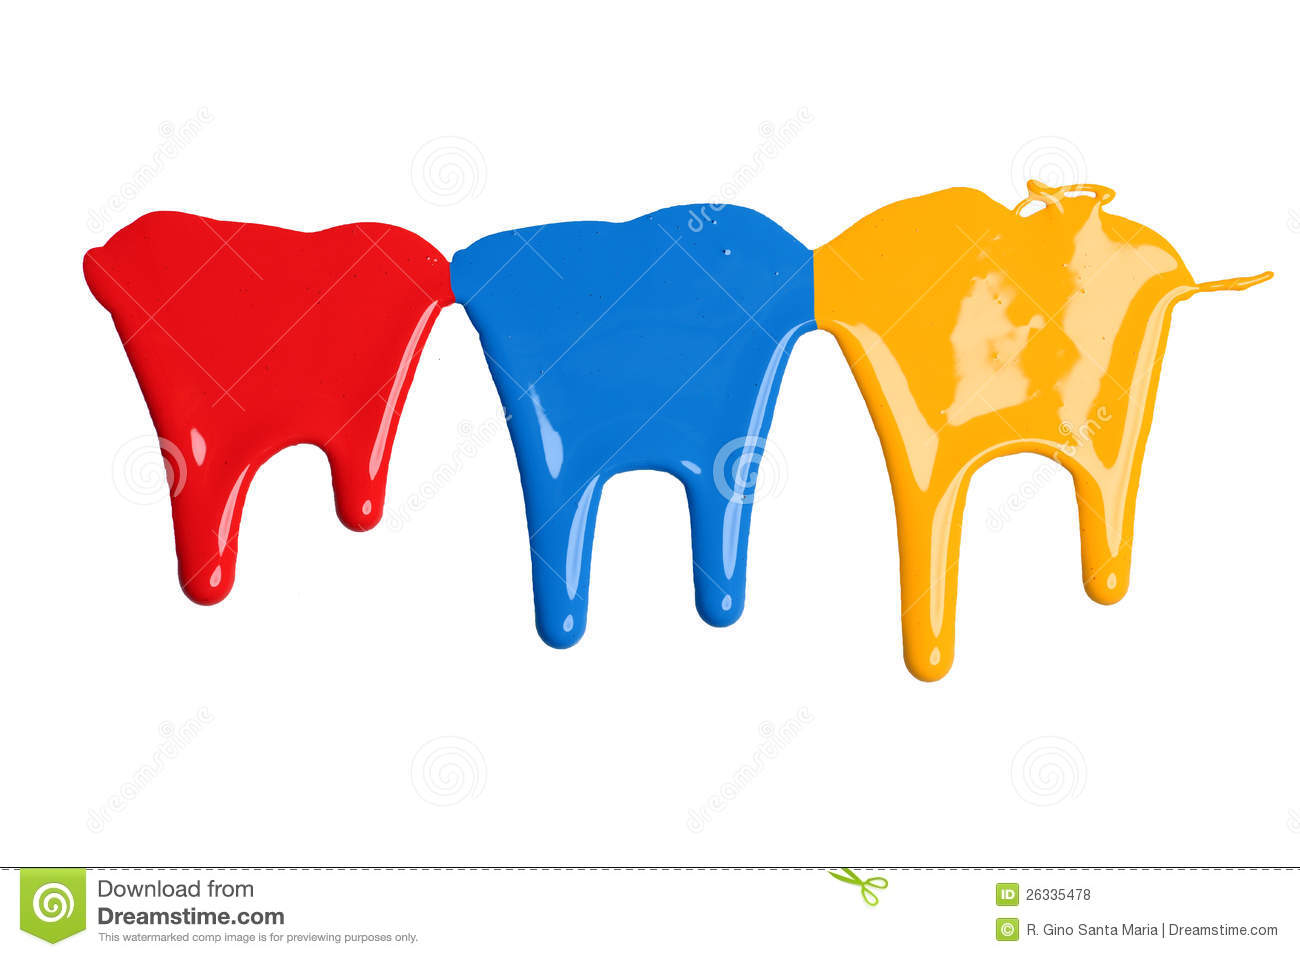 red blue and yellow paint dripping royalty free stock photos image 26335478. Black Bedroom Furniture Sets. Home Design Ideas